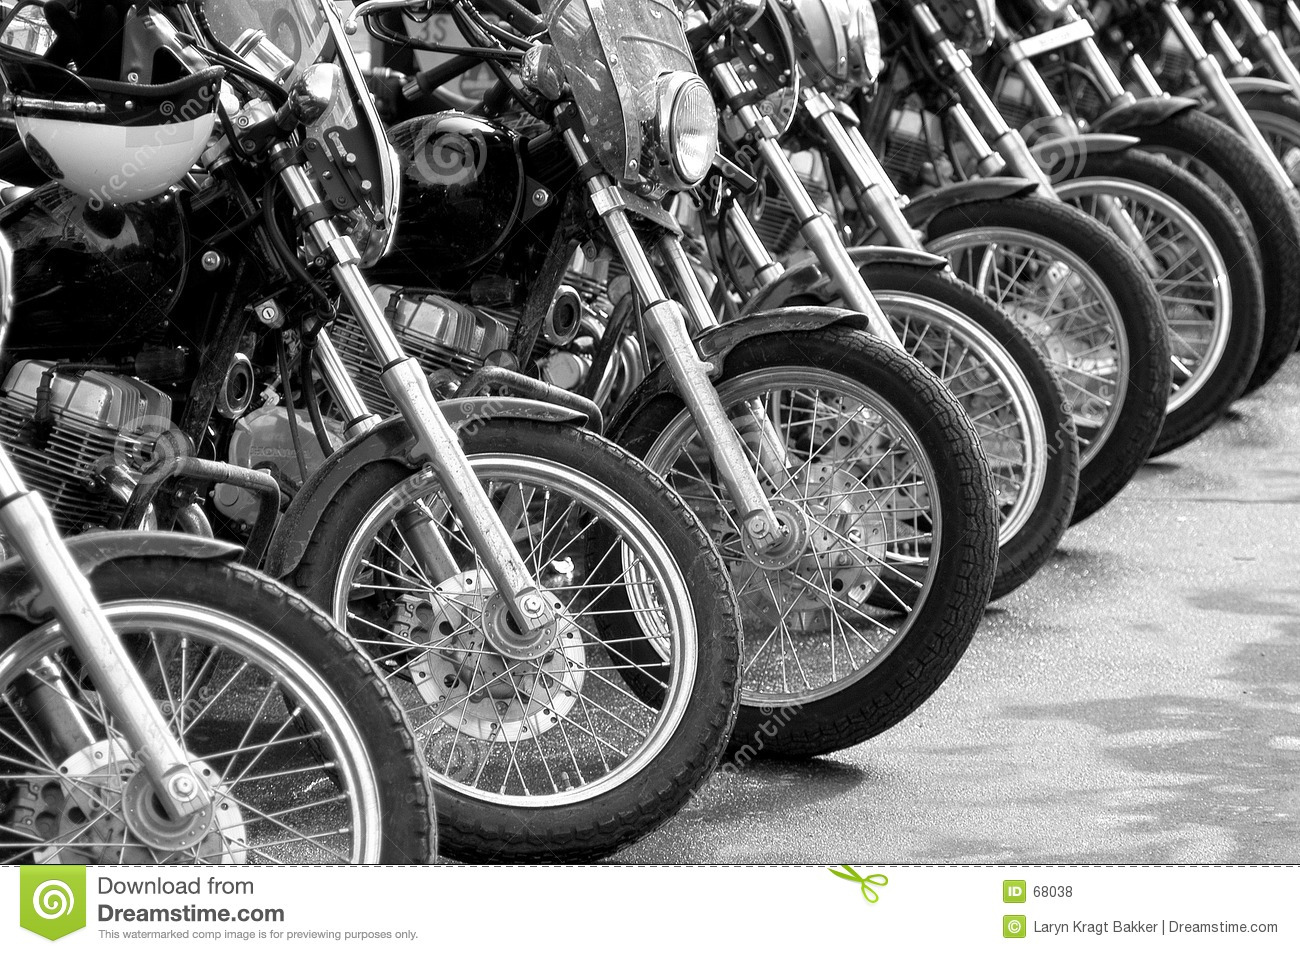 Bikes in a row - cop motorcycle lineup at protest